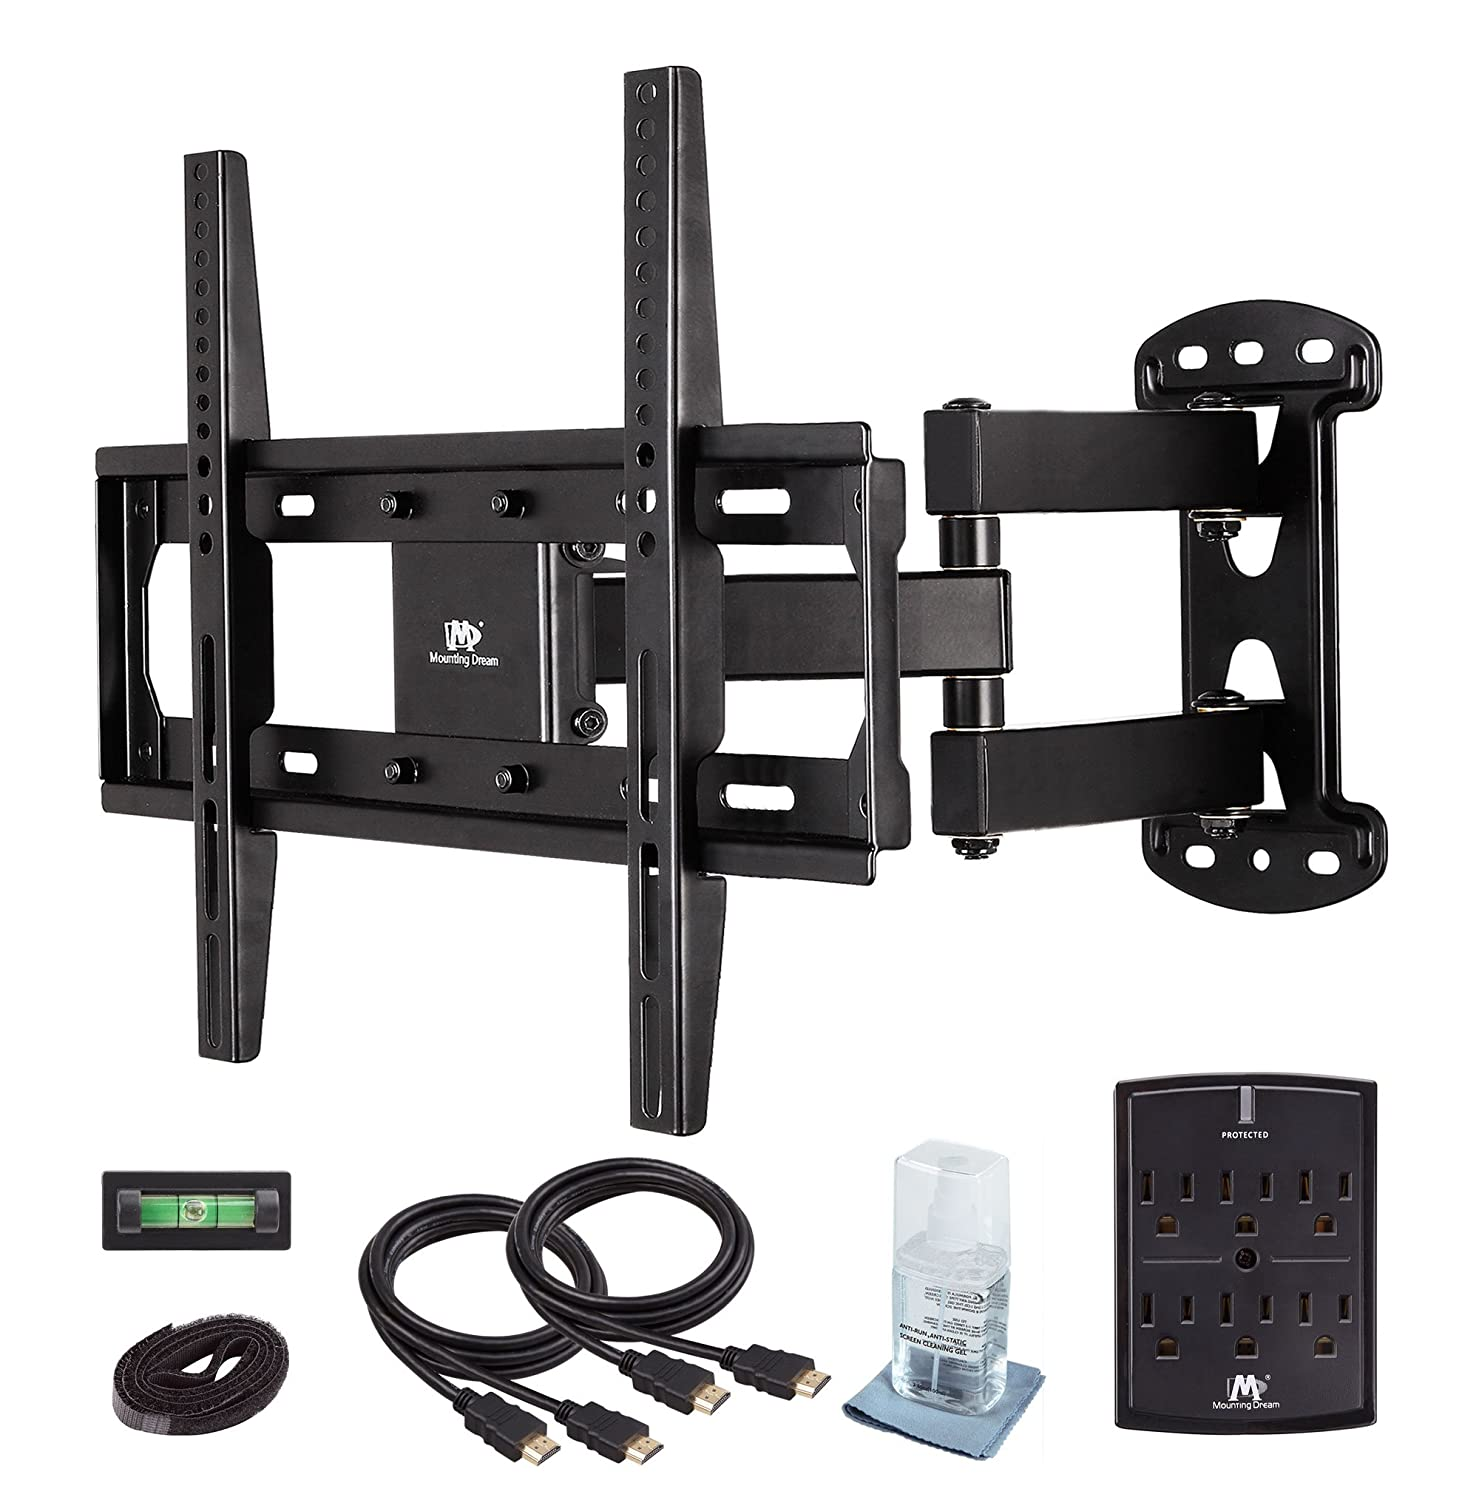 Mounting Dream MD2377-KT TV Wall Mount Bracket Kit for 26-55 Inches TVs with HDMI Cables, Velcro Cable Ties, Anti-static Screen Cleaning Gel & Magnetic Bubble Level